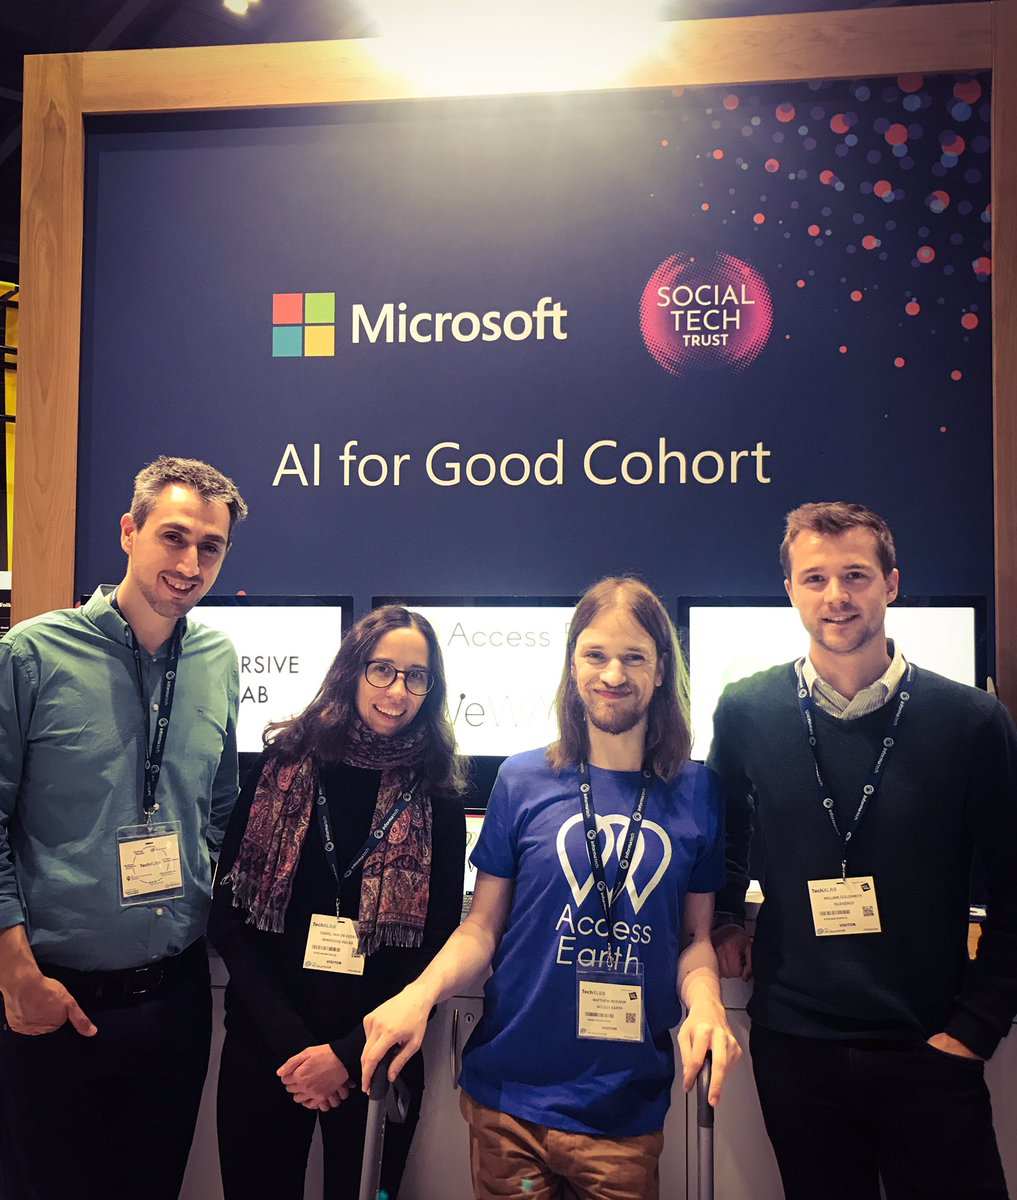 Here they are⭐️4 of our awesome #Ai4Good Cohort taking to stage at the #AISummit as part of #LTW19. Come & learn more about their impactful uses of AI on the @MicrosoftUK stand @wewalkio @ImmersiveRehab @Access_Earth #LondonTechWeek #Tech4Good @msft4startupsEU @SocialTechTrust